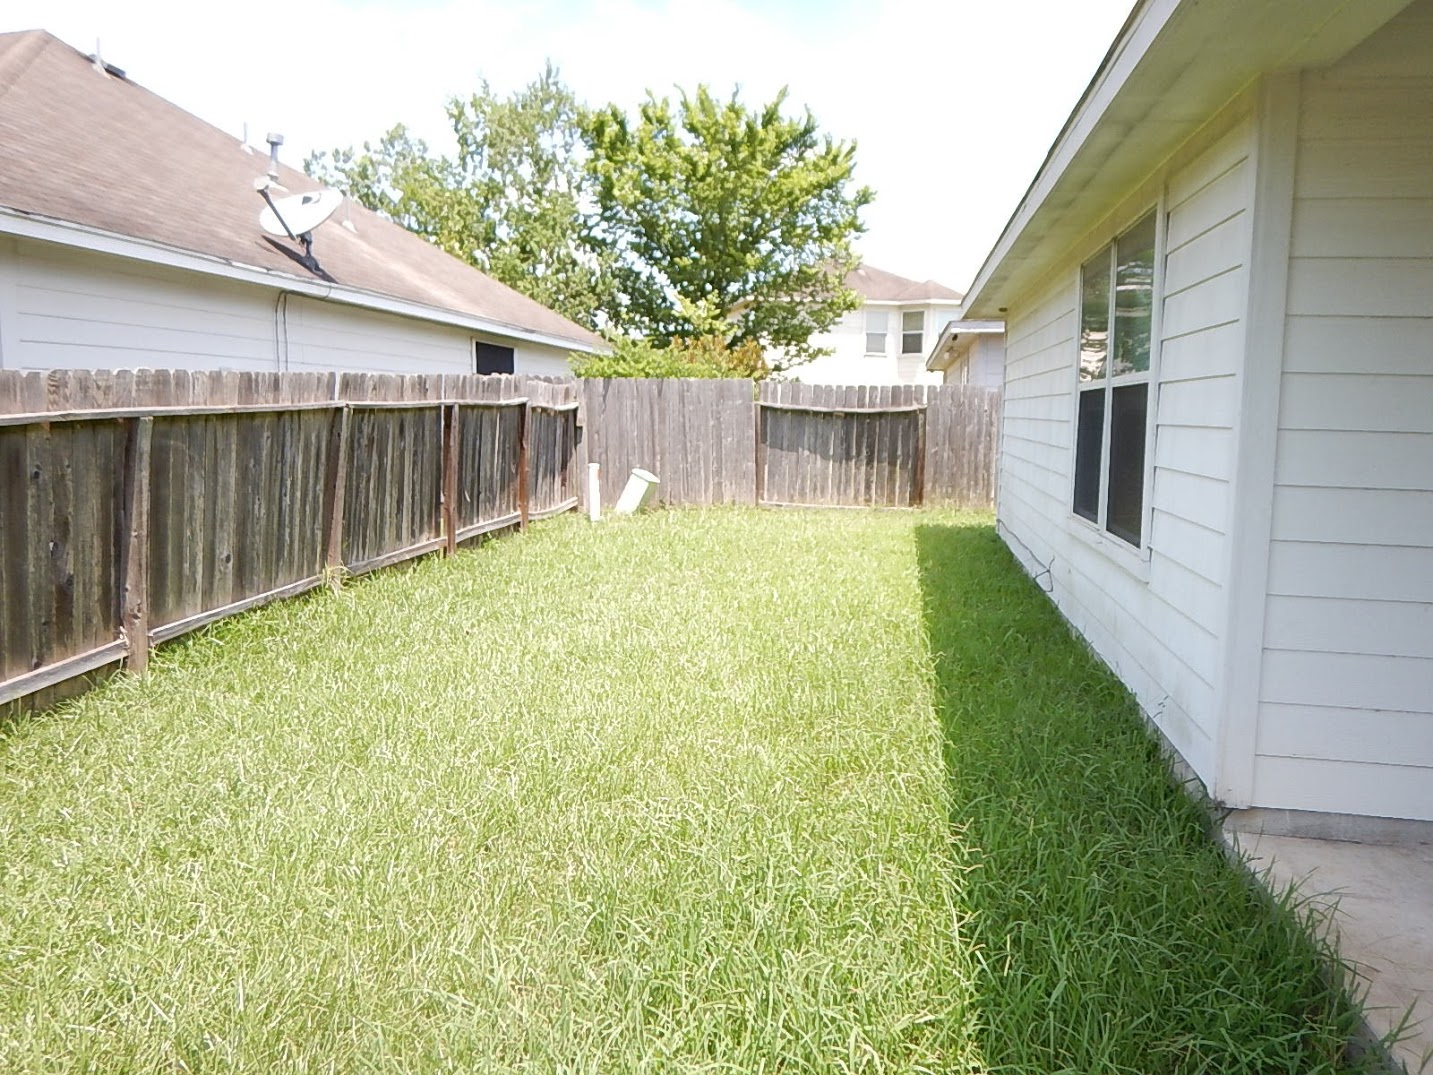 Section 8 Houses For Rent In Houston Tx 100 Houses For Rent In Houston Texas 77047 13942